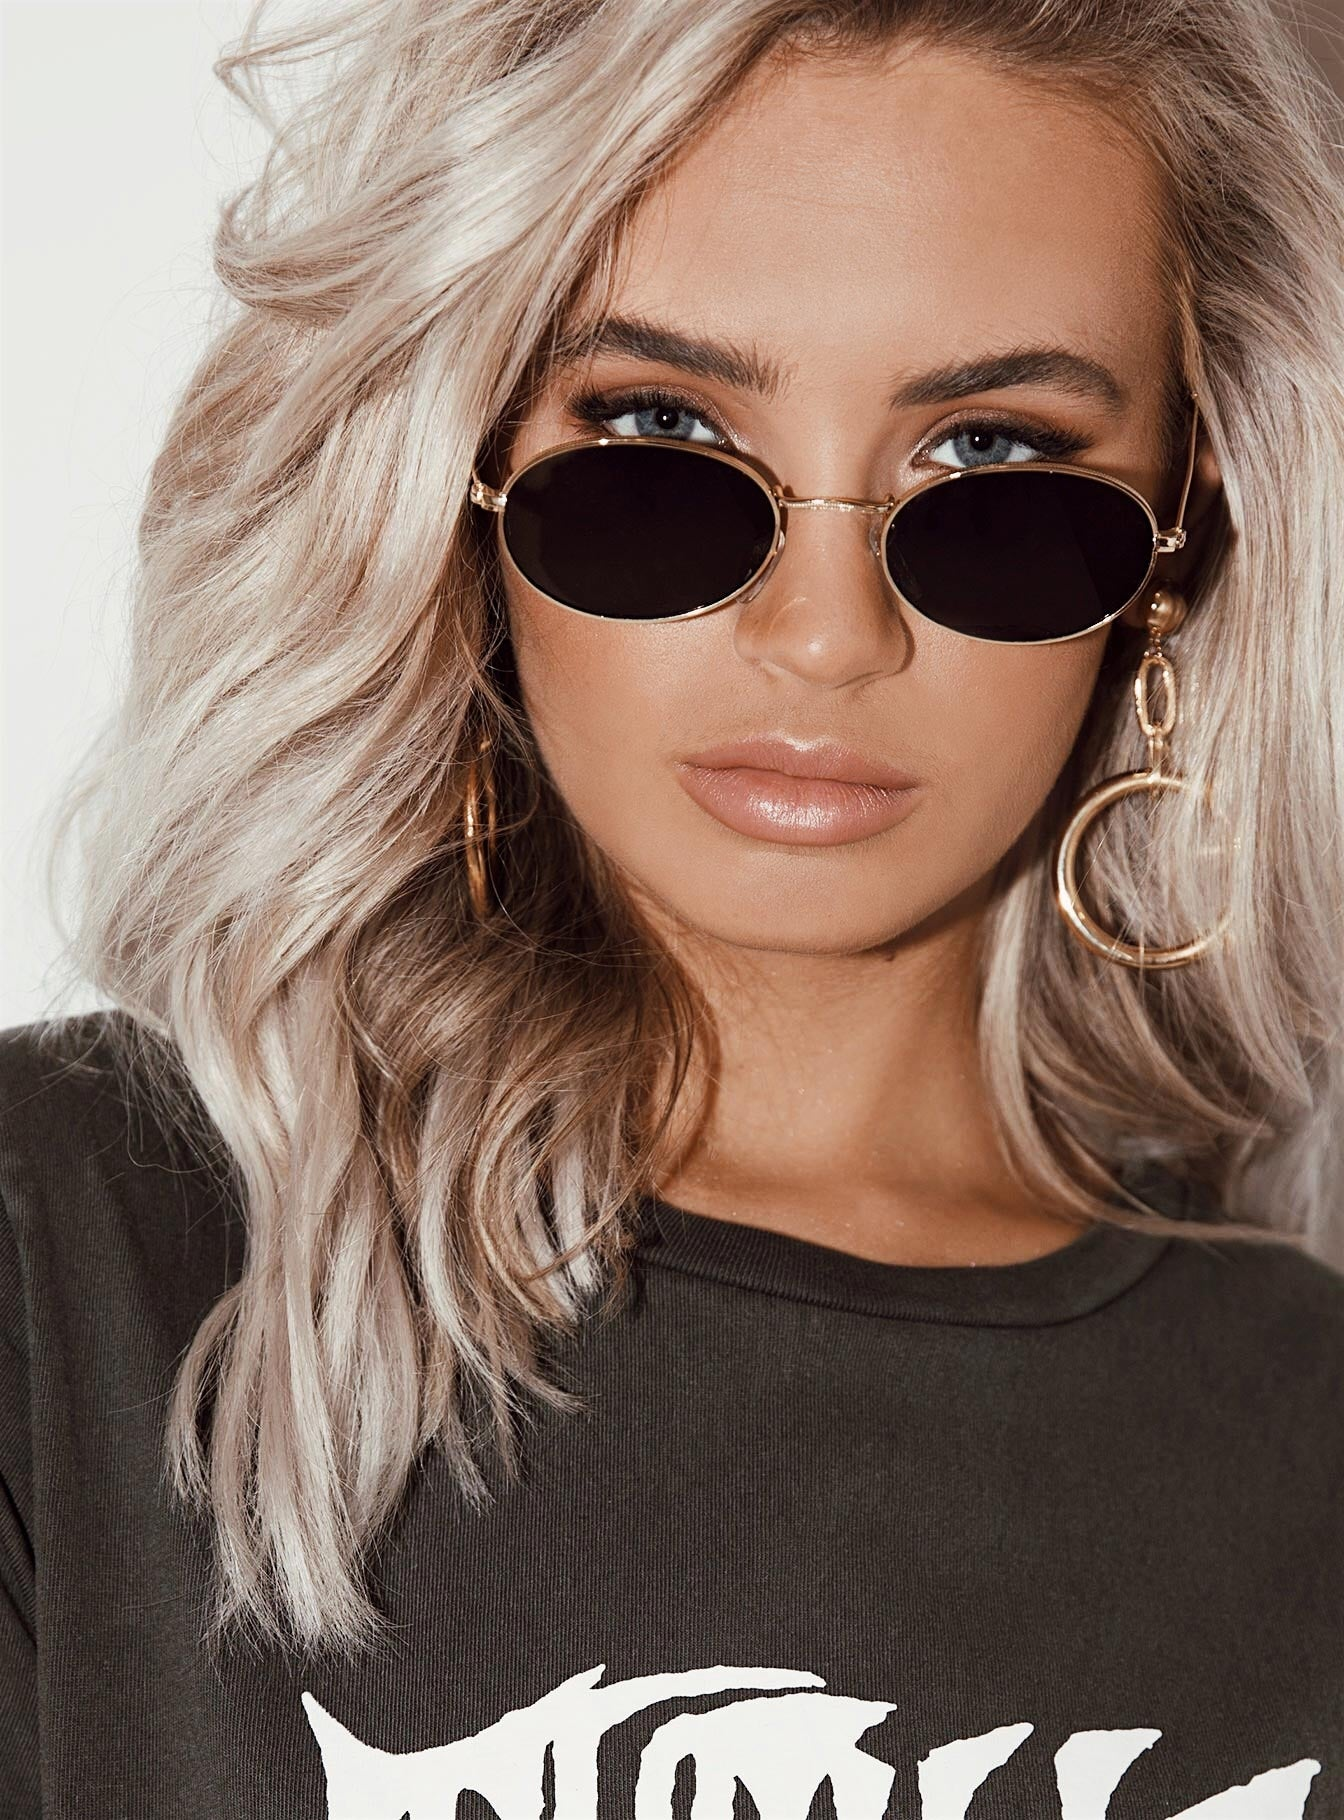 Frankie Oval Sunglasses Black/Gold